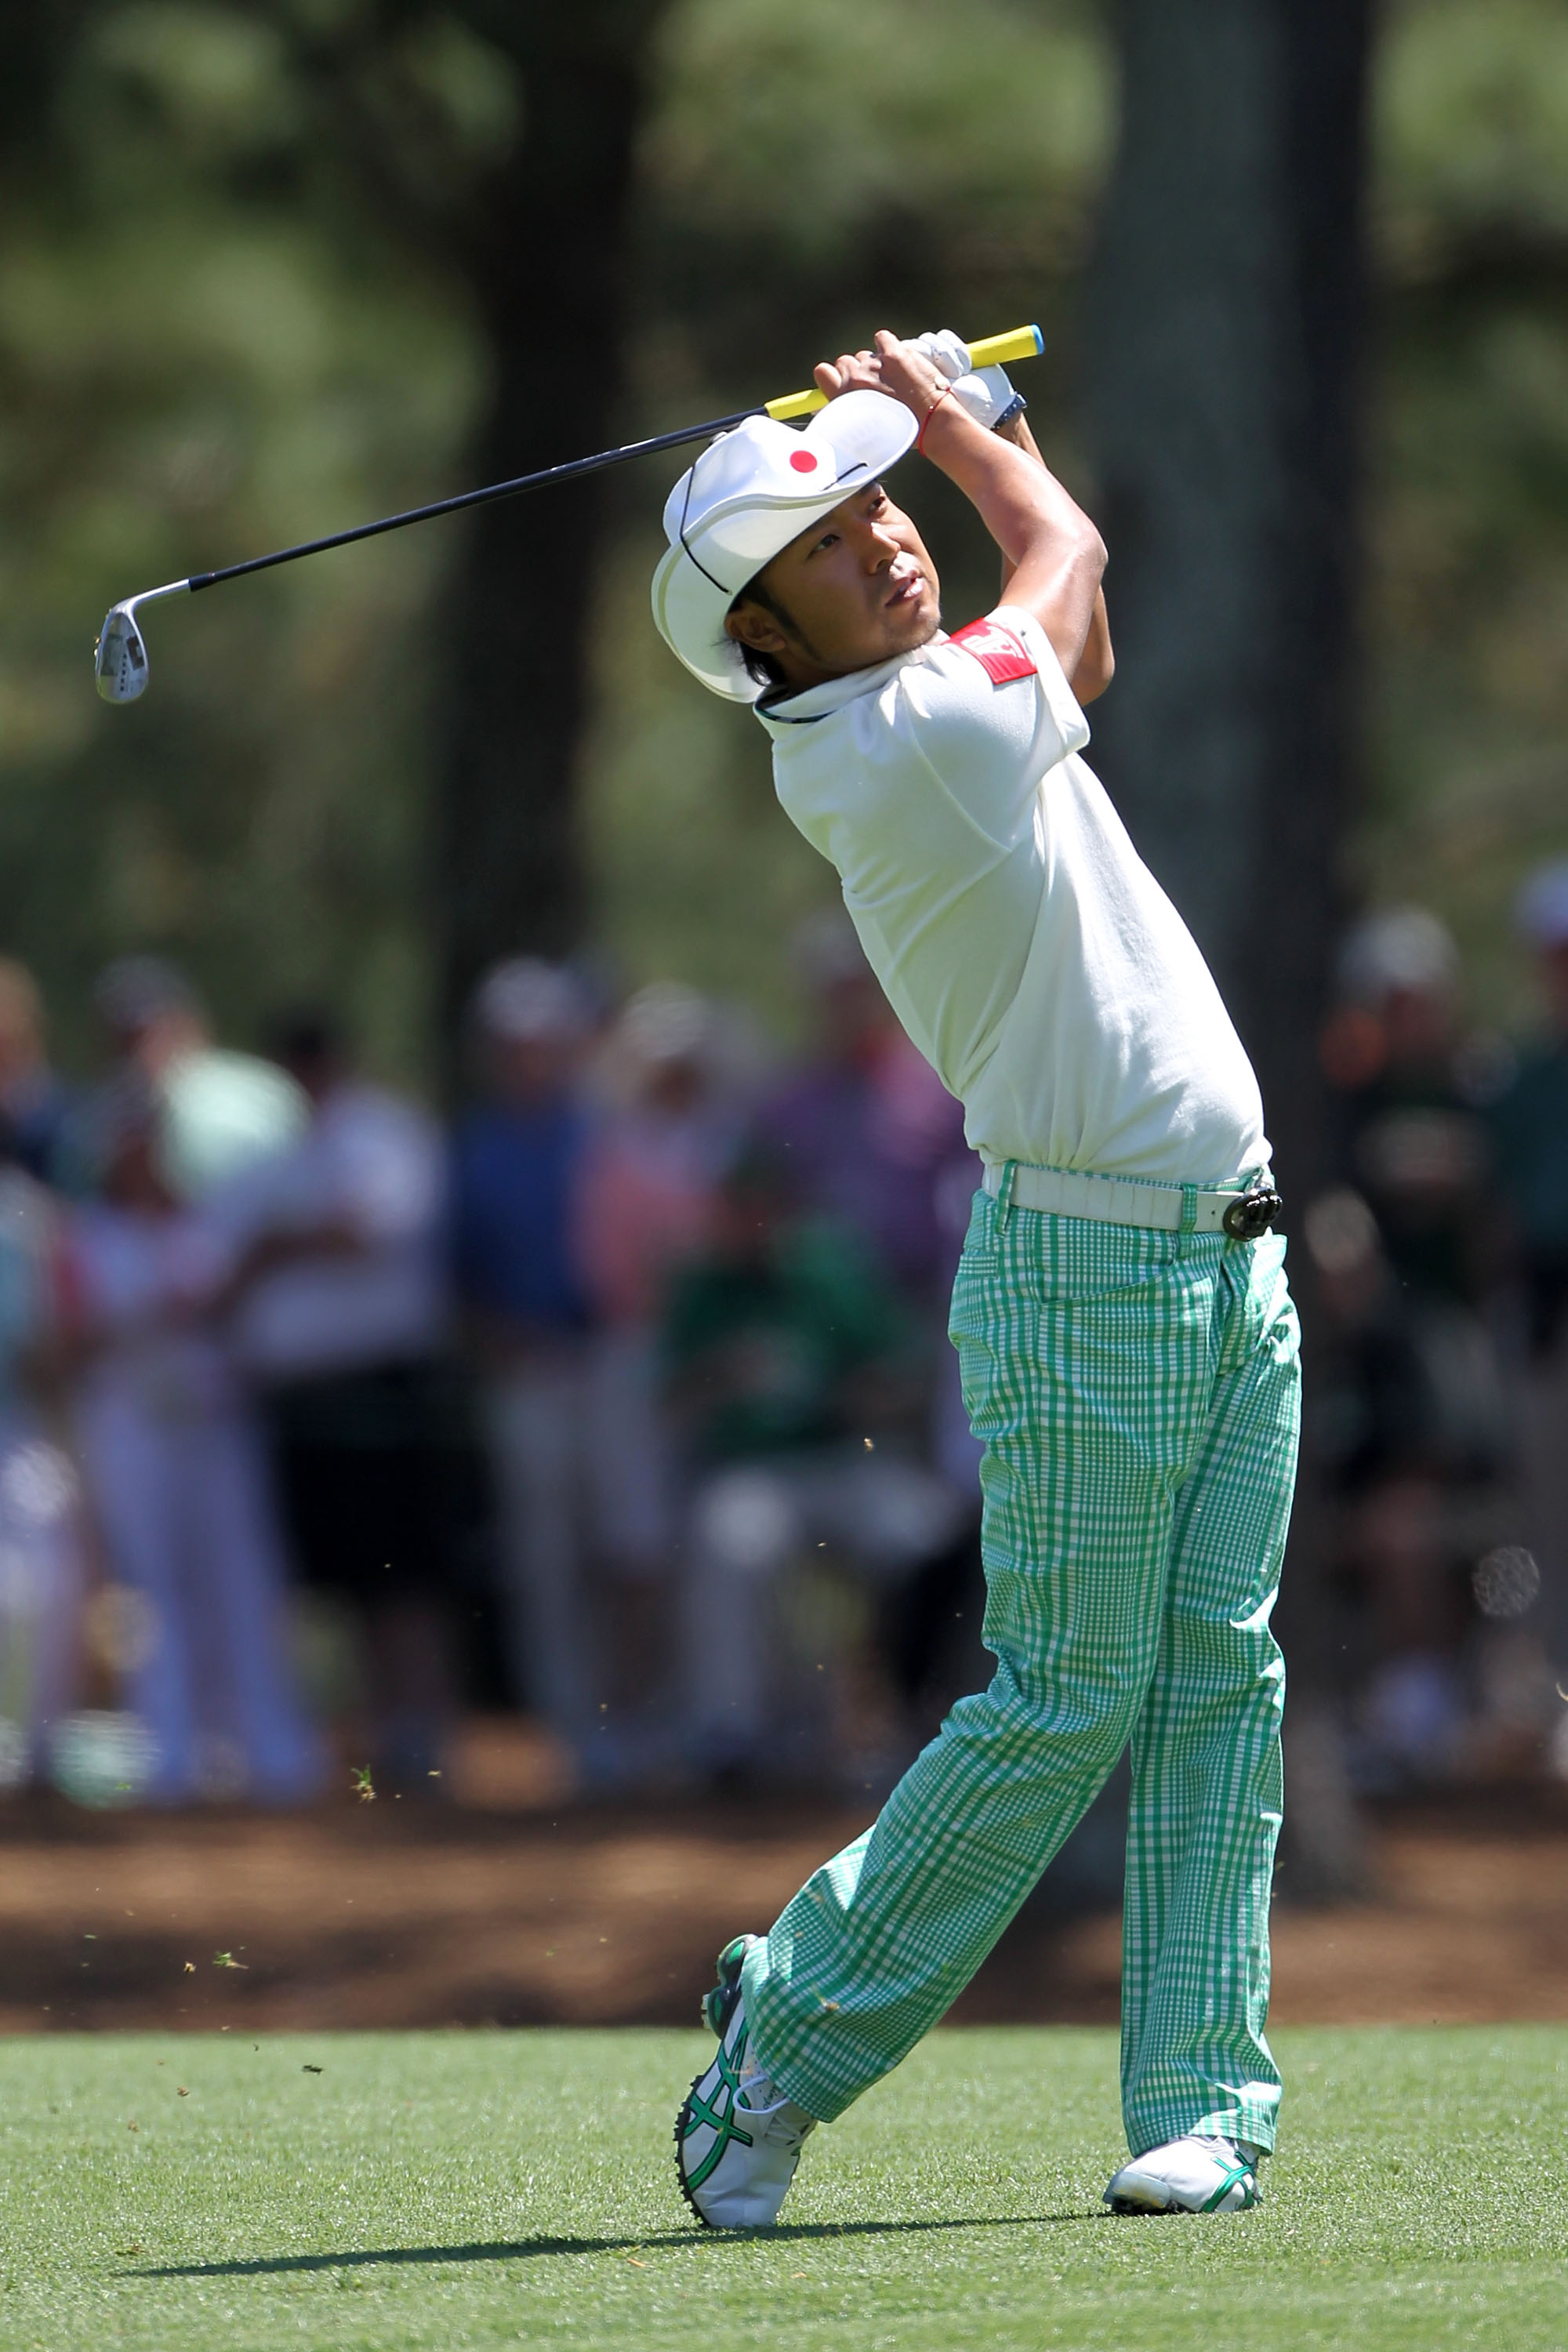 AUGUSTA, GA - APRIL 09:  Shingo Katayama of Japan plays a shot on the 14th hole during the second round of the 2010 Masters Tournament at Augusta National Golf Club on April 9, 2010 in Augusta, Georgia.  (Photo by Jamie Squire/Getty Images)